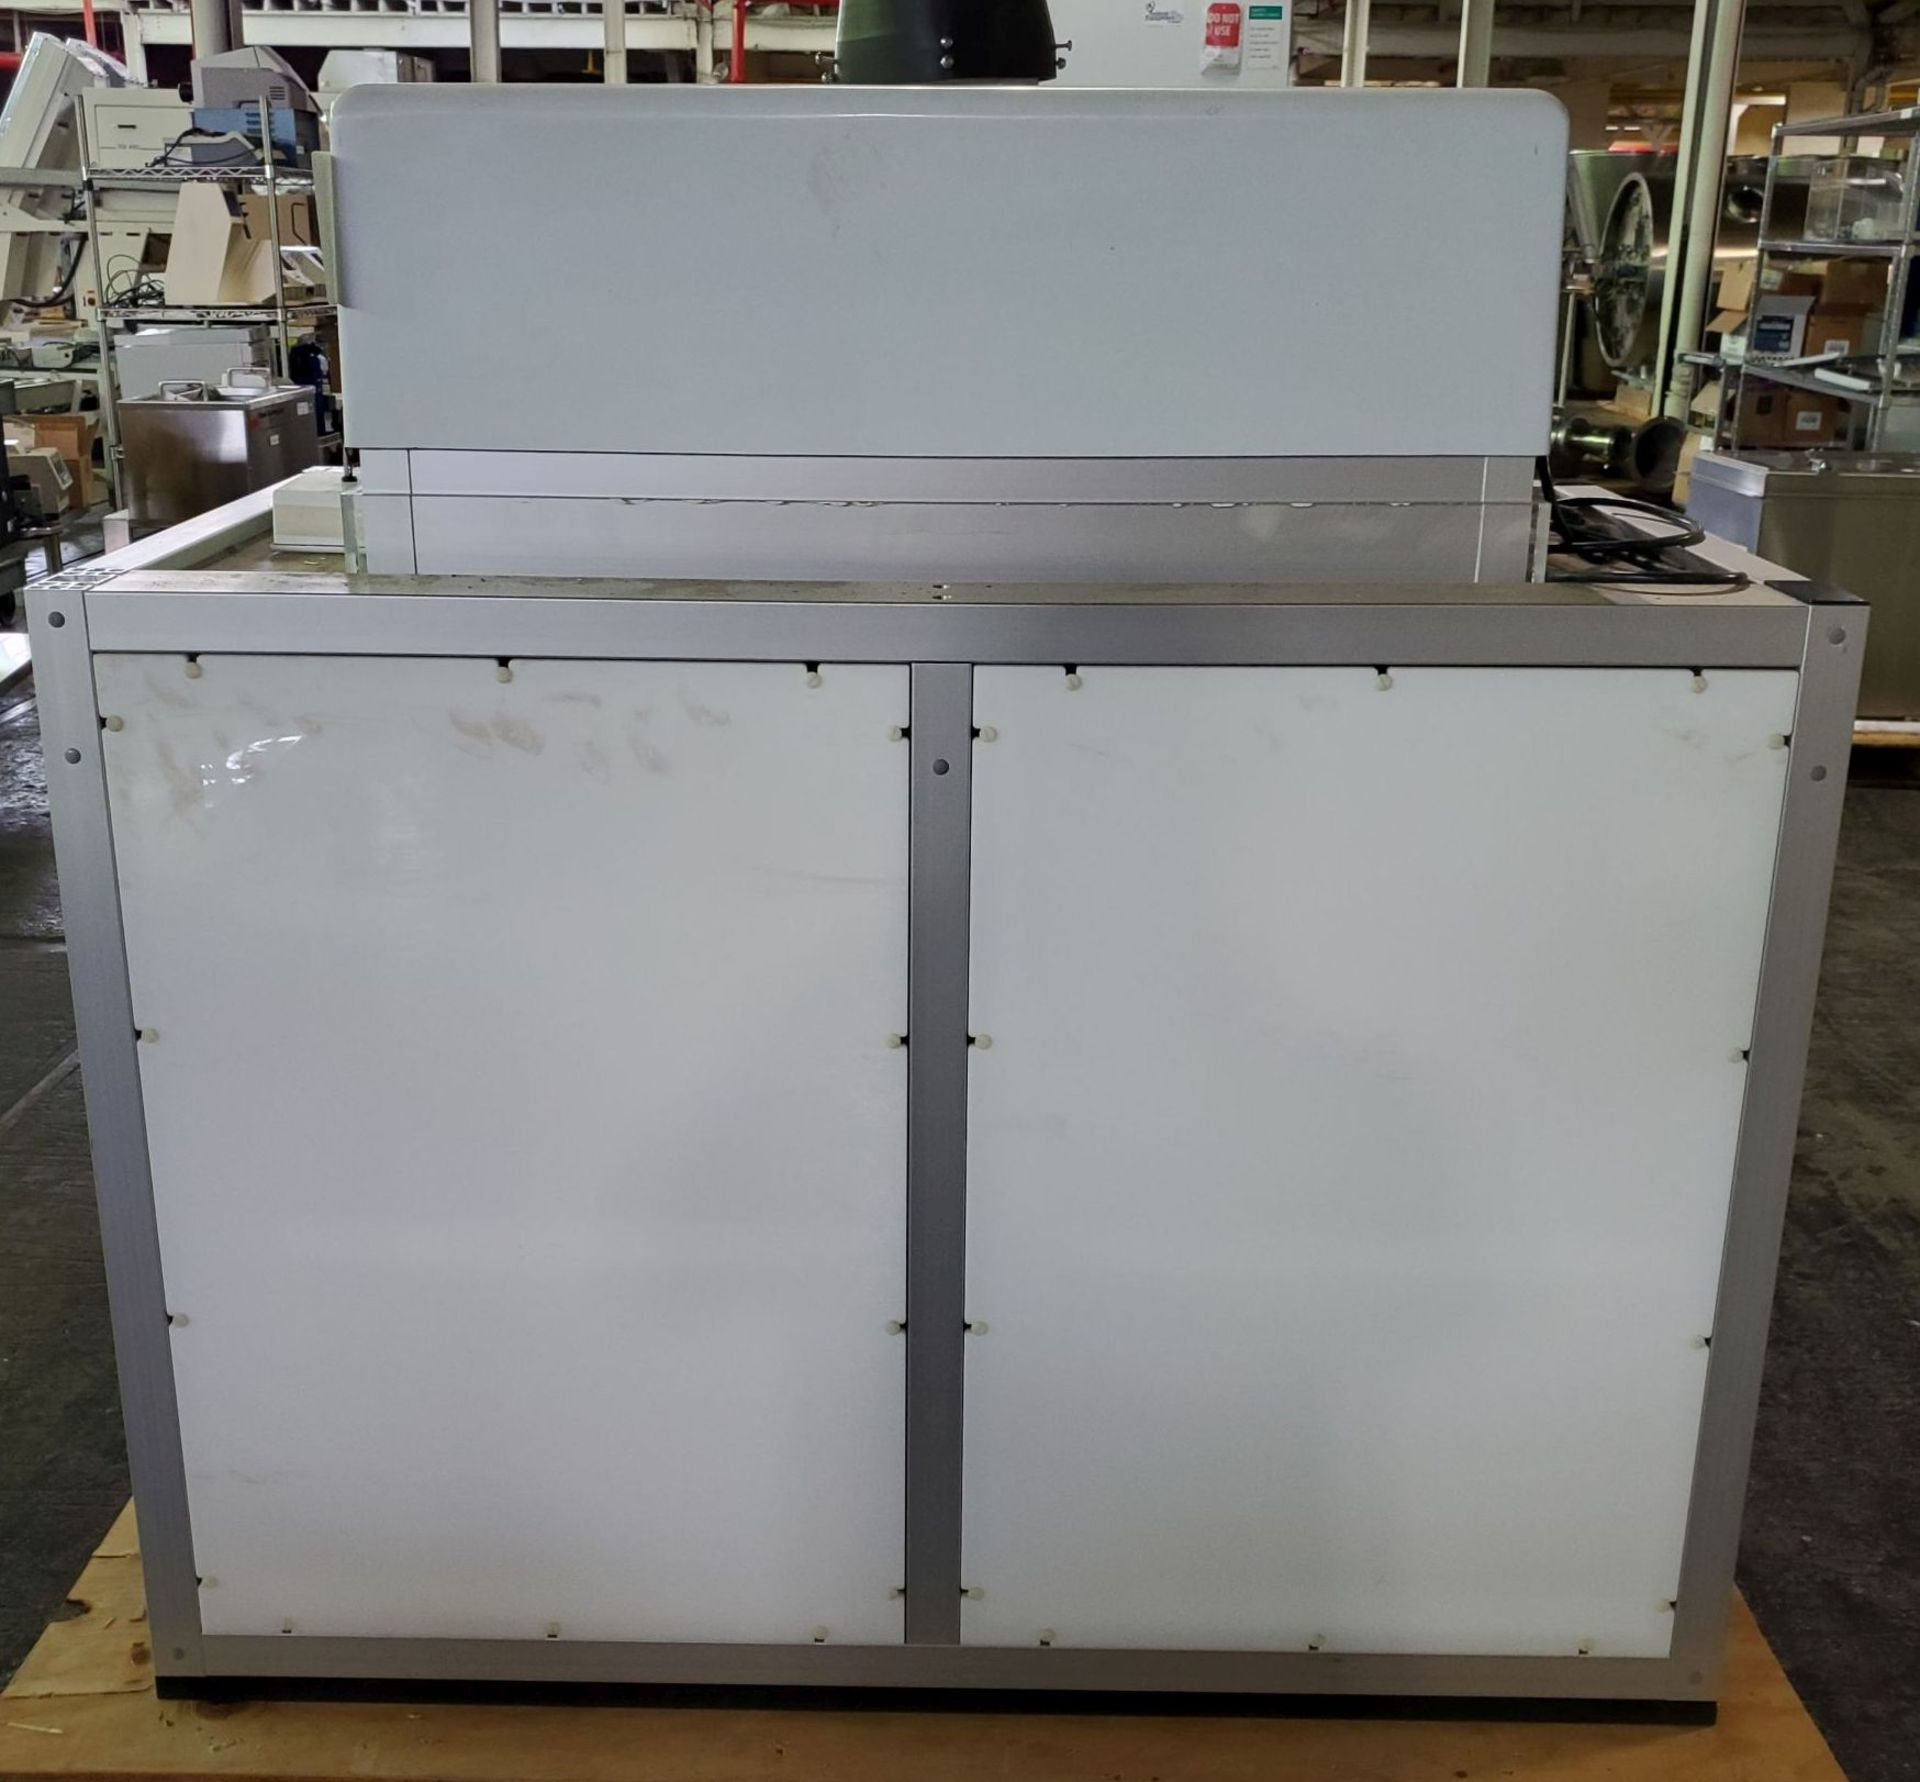 Flow Sciences HEPA Flow Hood/Glovebox, enclosure model FS5000-108 - Image 6 of 10